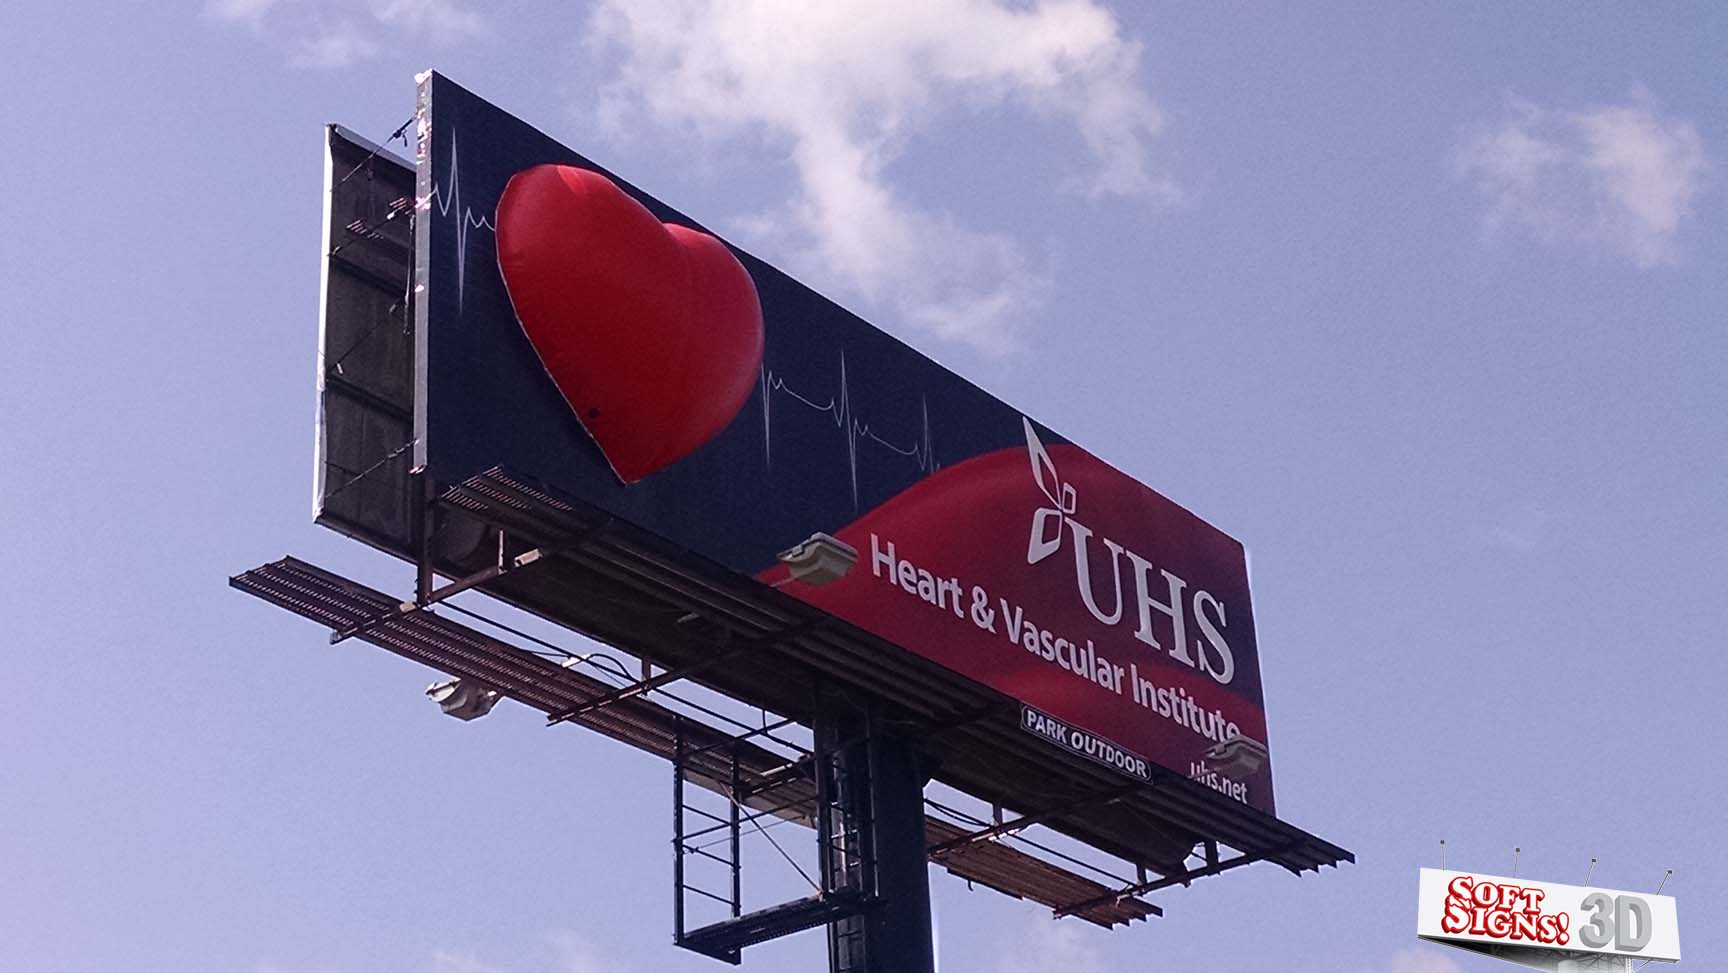 UHS Heart by Soft Signs 3D